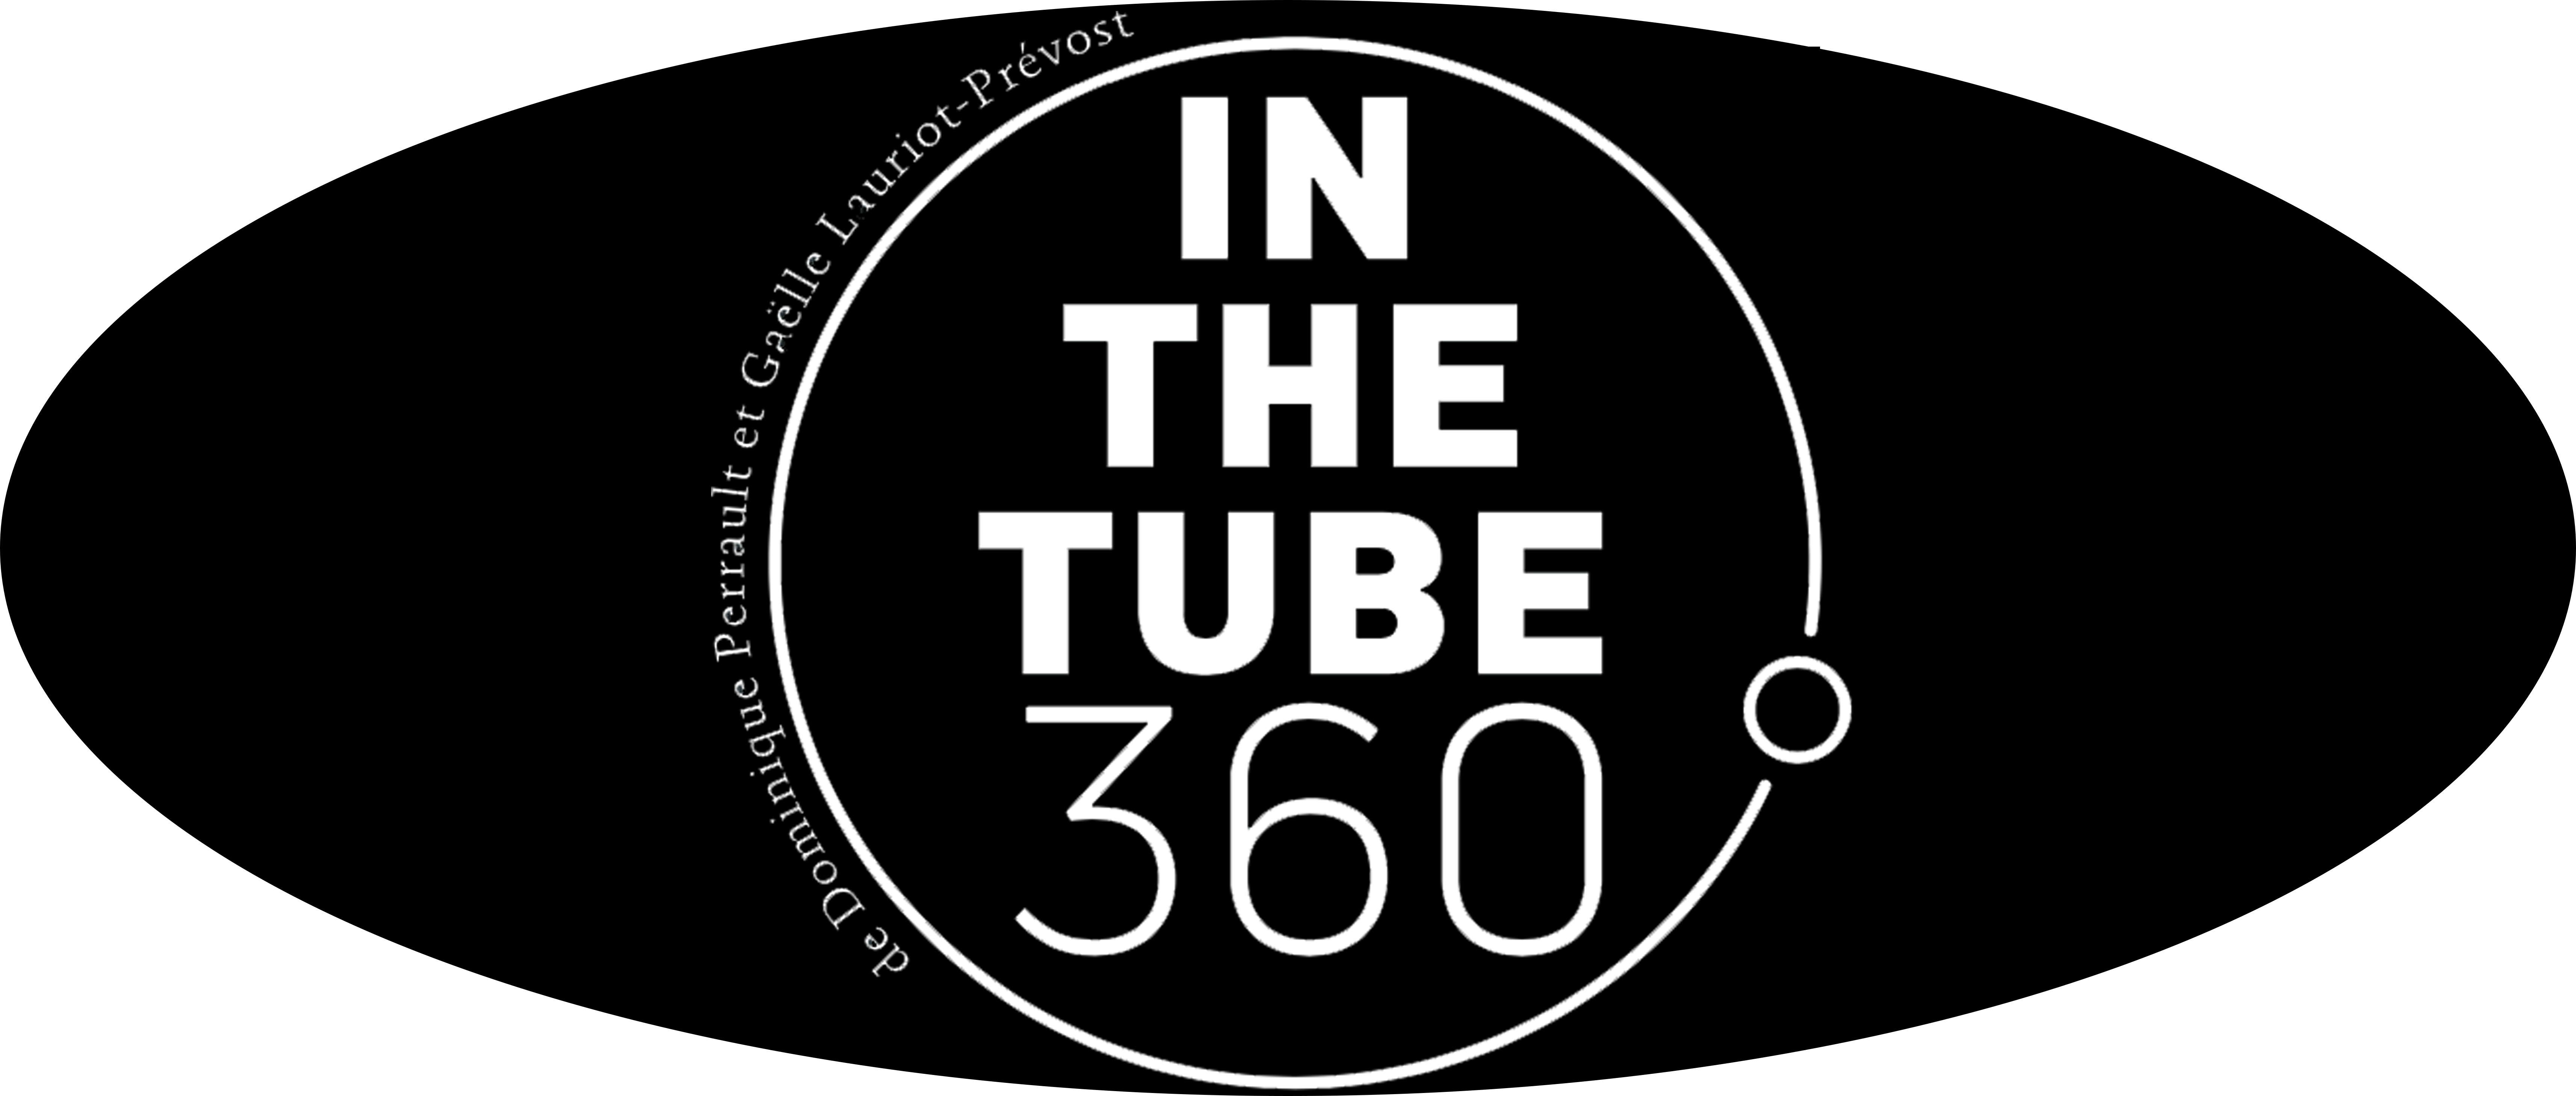 PETIT LOGO IN THE TUBE 360.png